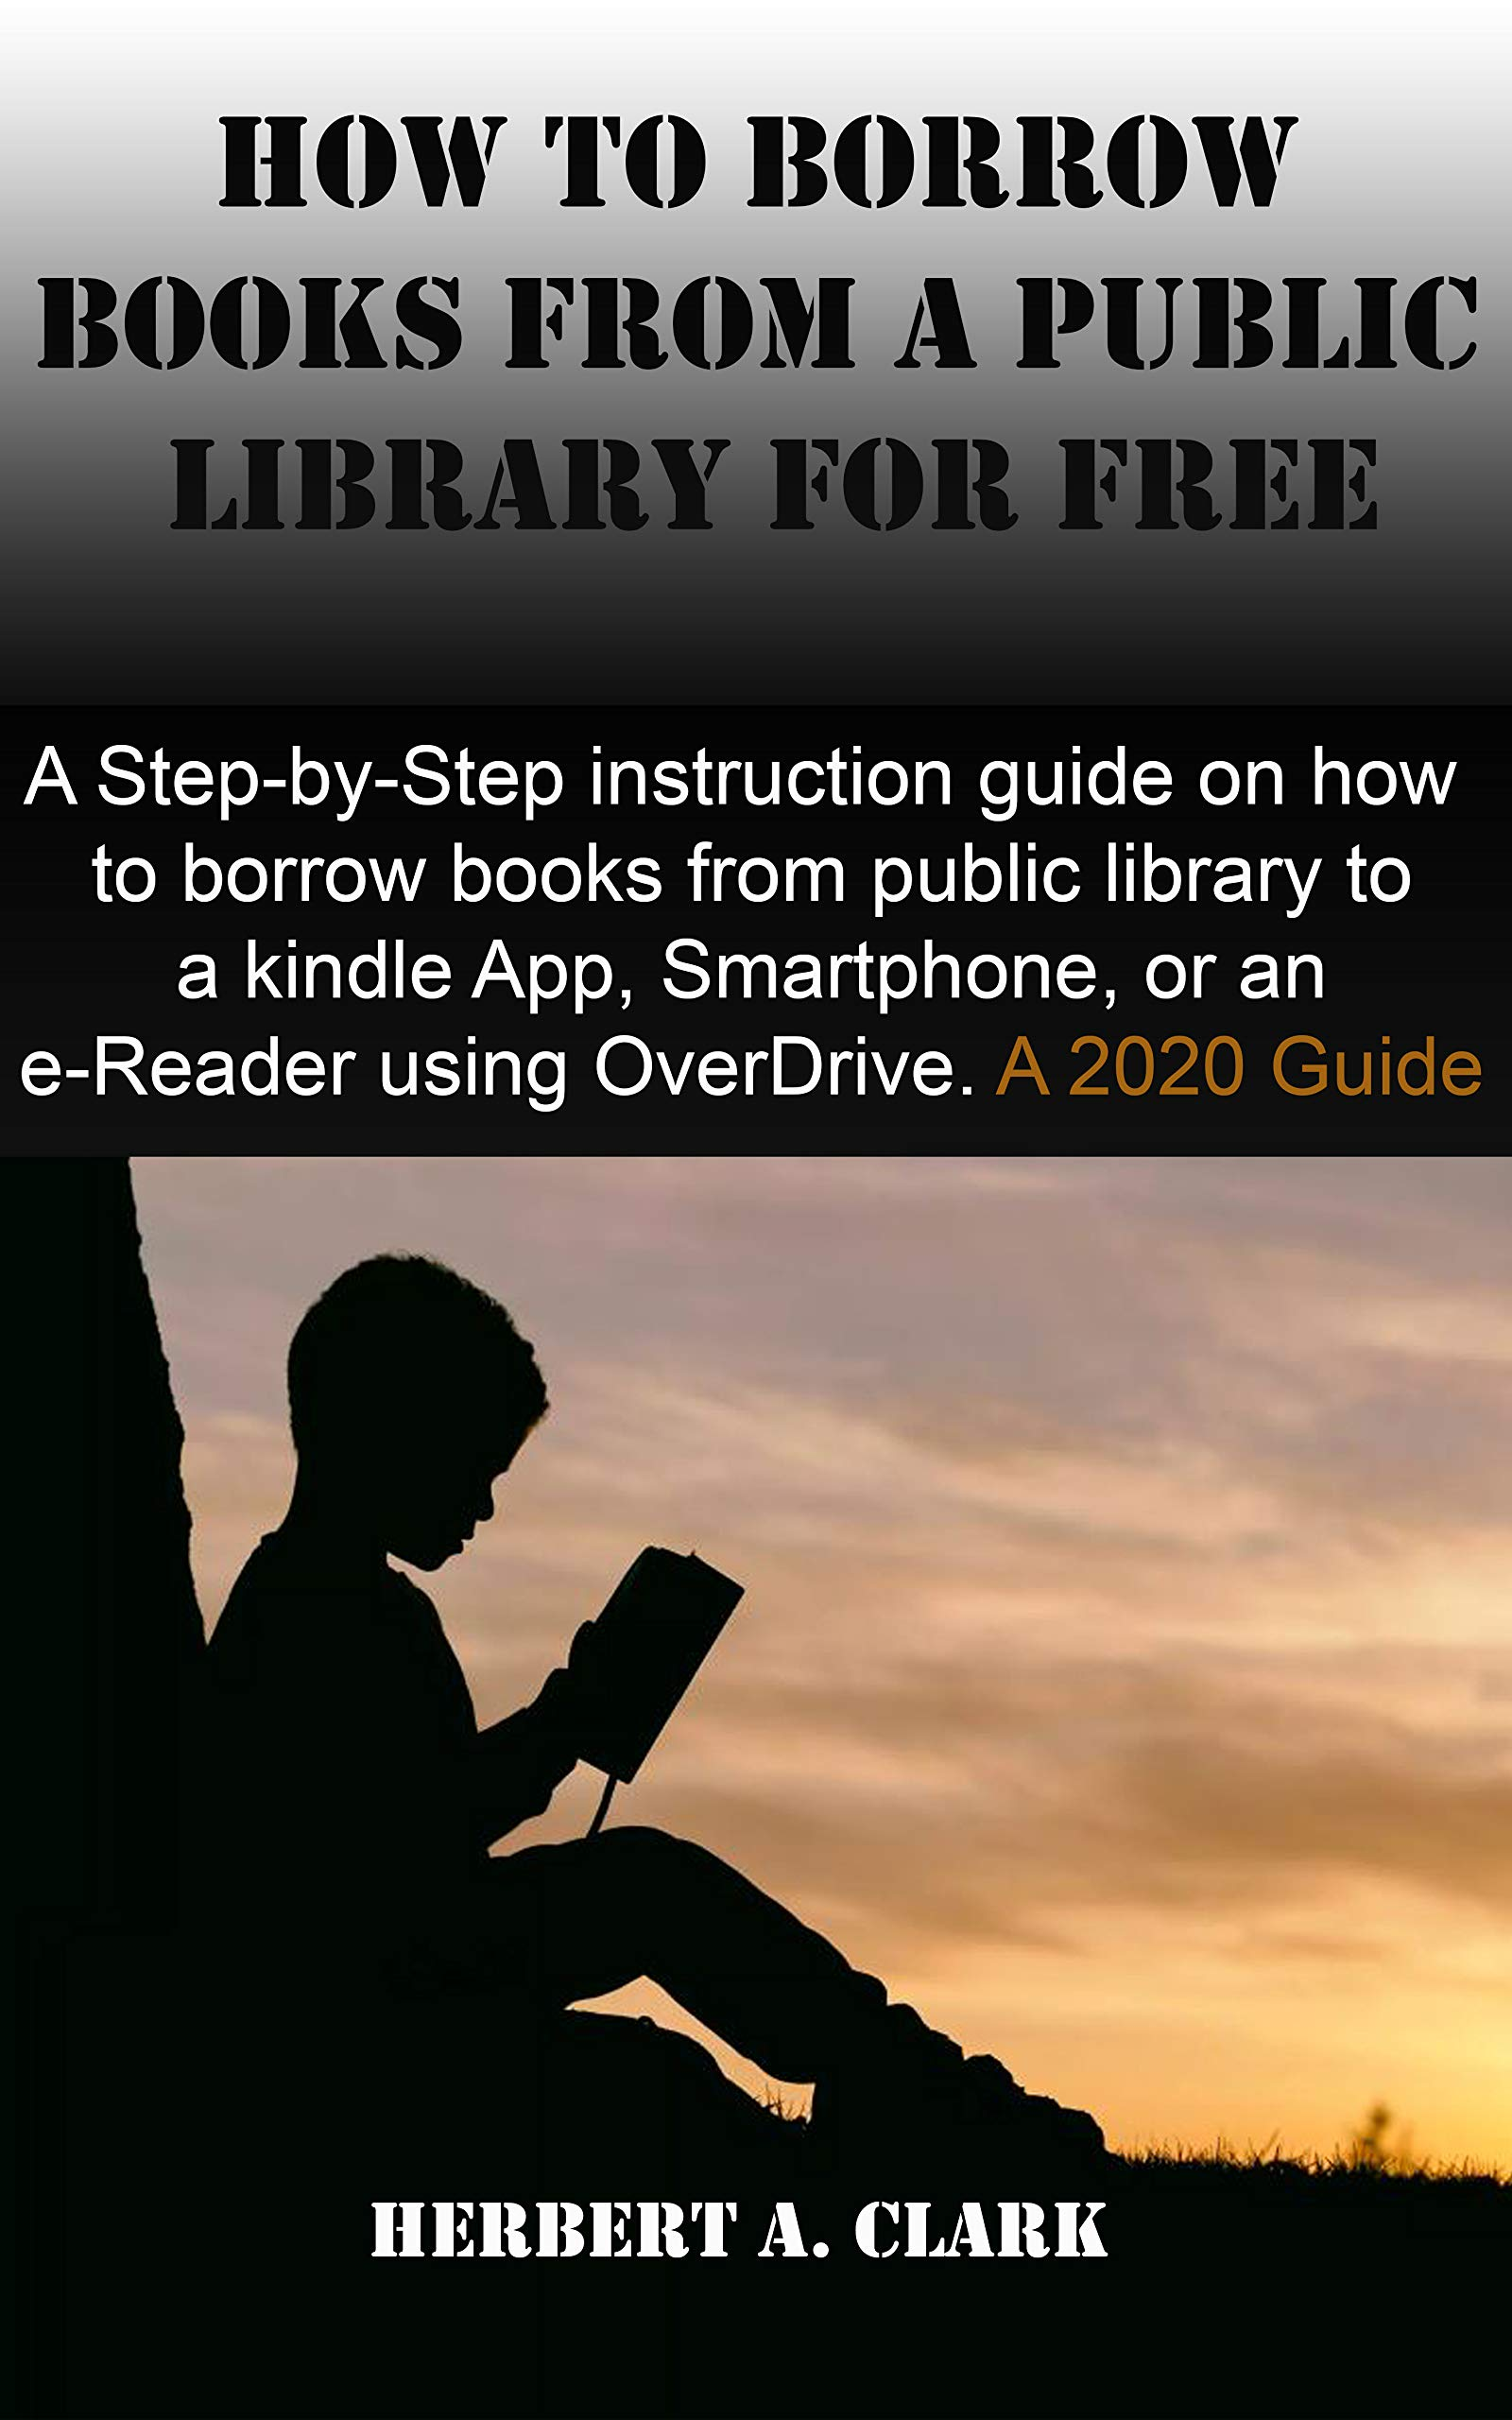 HOW TO BORROW BOOKS FROM A PUBLIC LIBRARY FOR FREE ON KINDLE: A Step-by-Step instruction guide on how to borrow books from public library to a kindle App, Smartphone, or an e-Reader using overdrive.